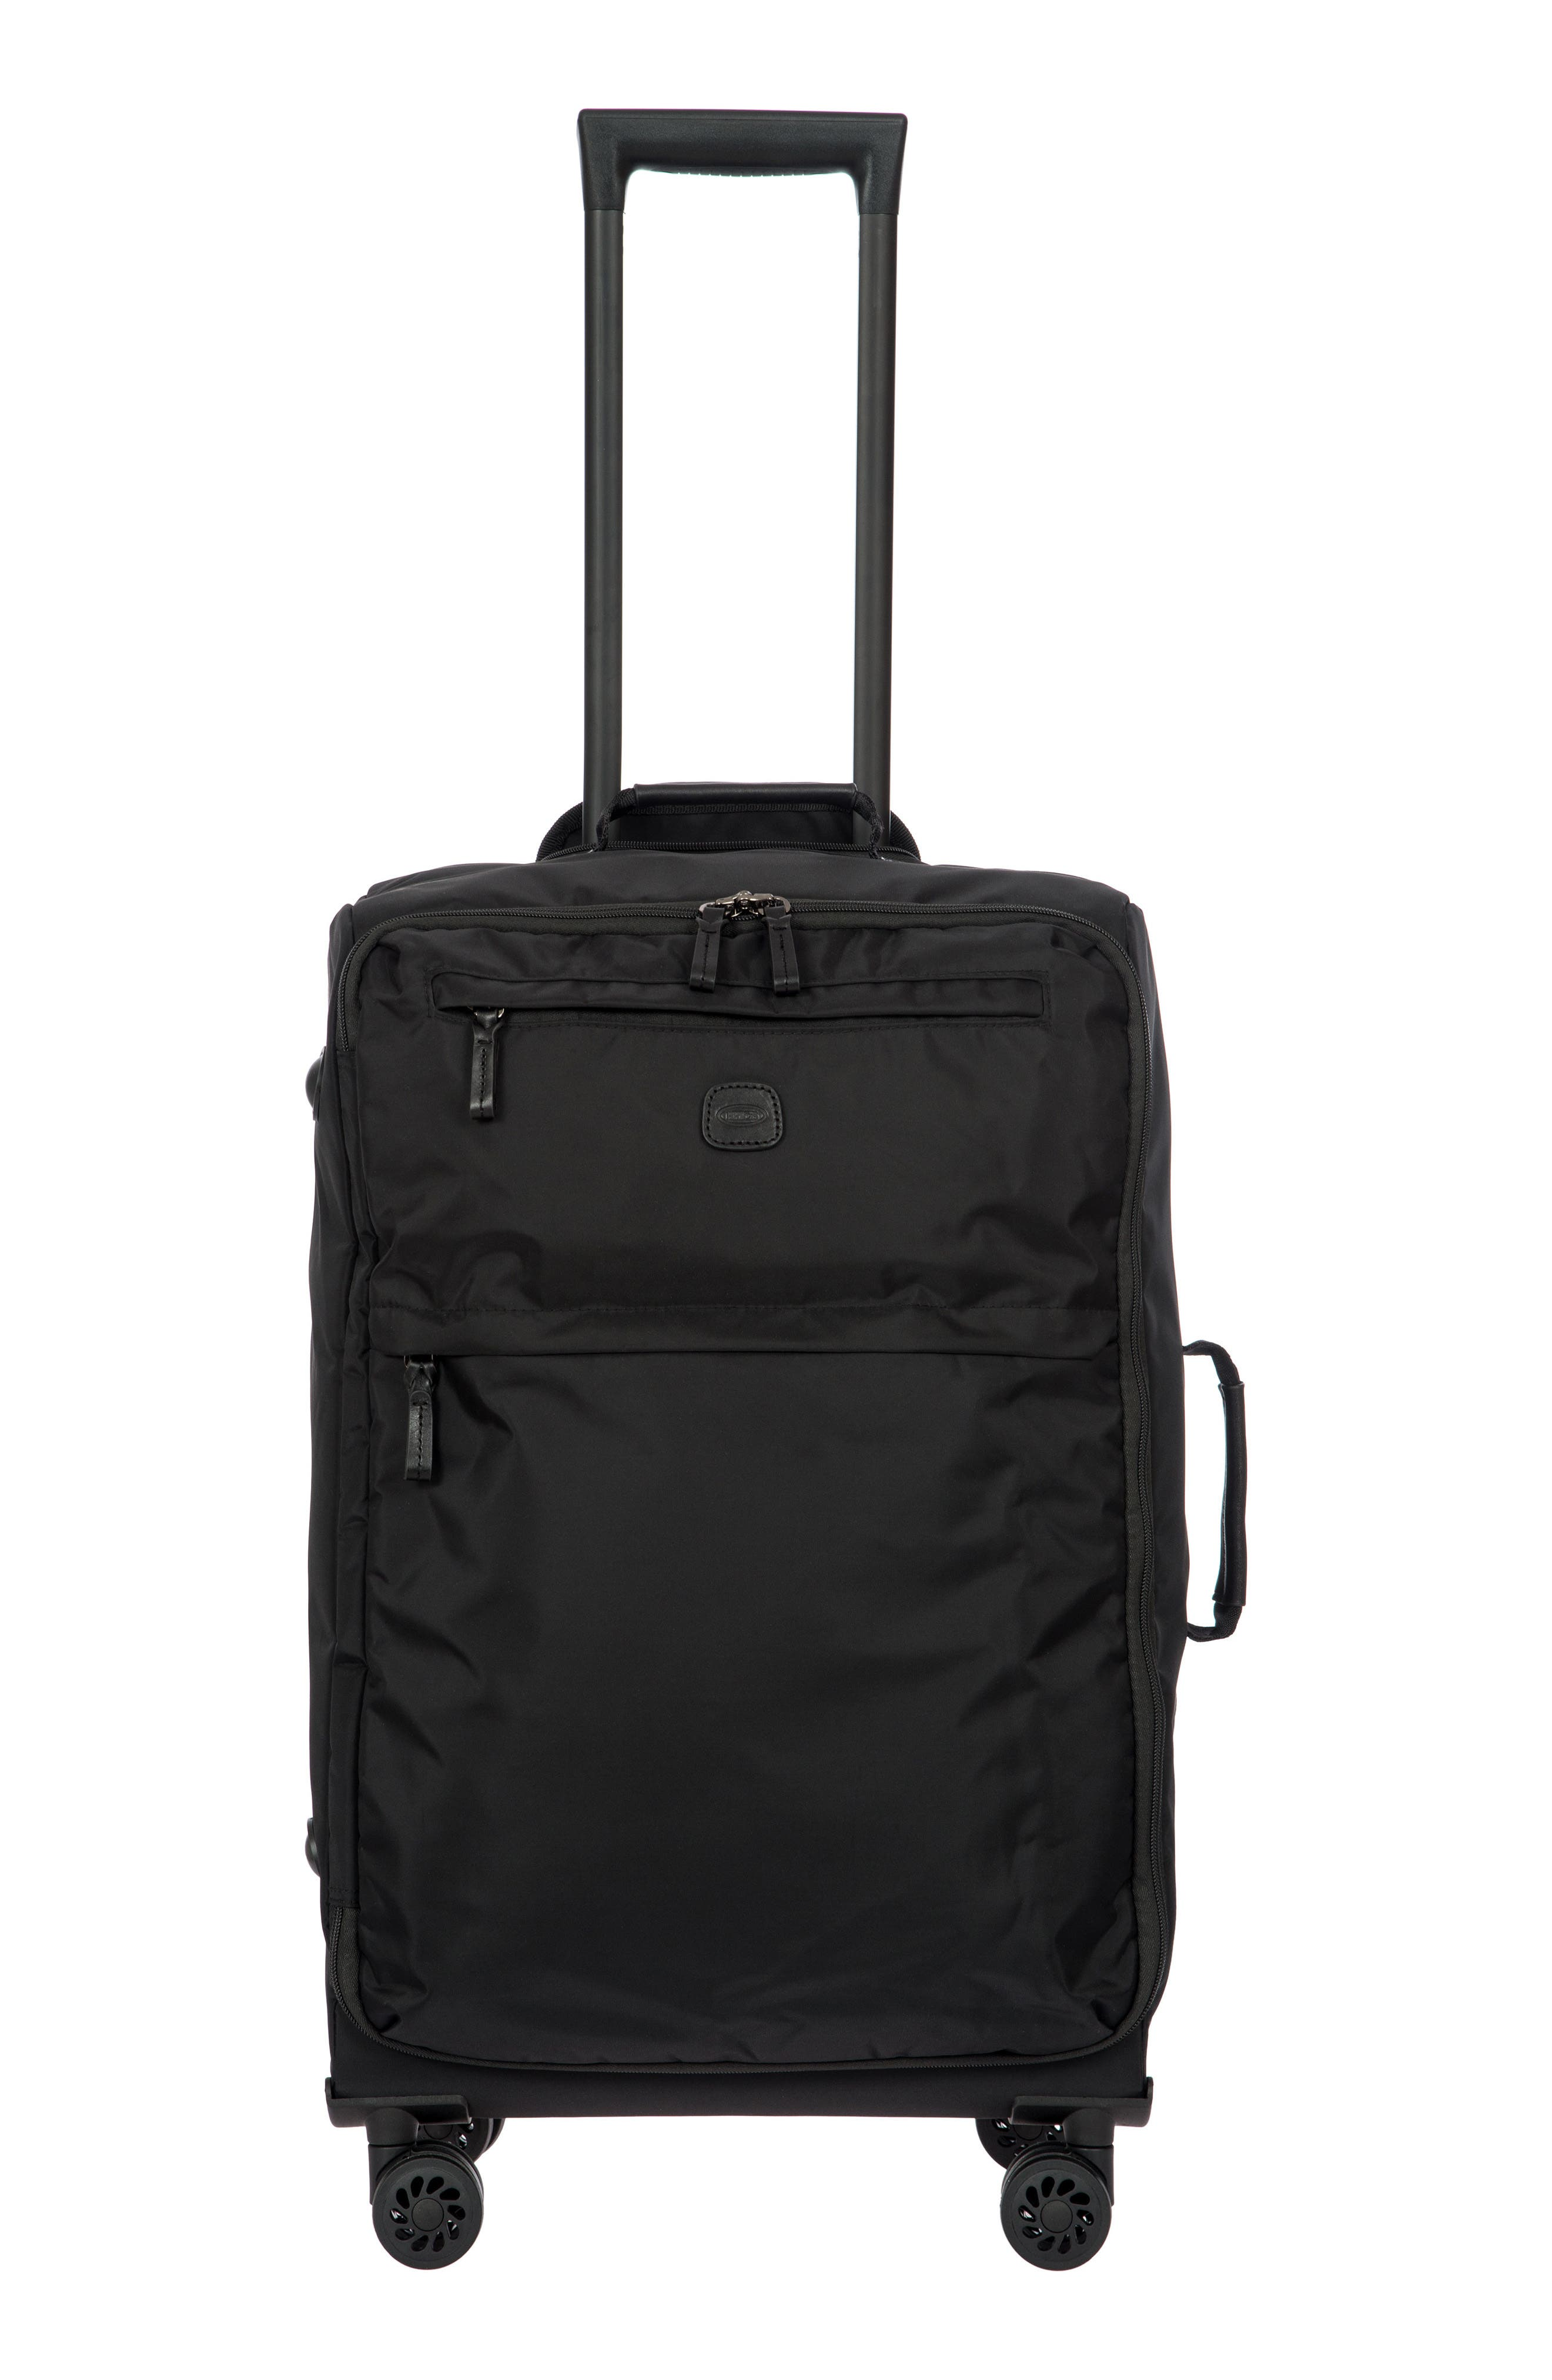 X-Bag 25-Inch Spinner Suitcase,                             Alternate thumbnail 8, color,                             Black/ Black